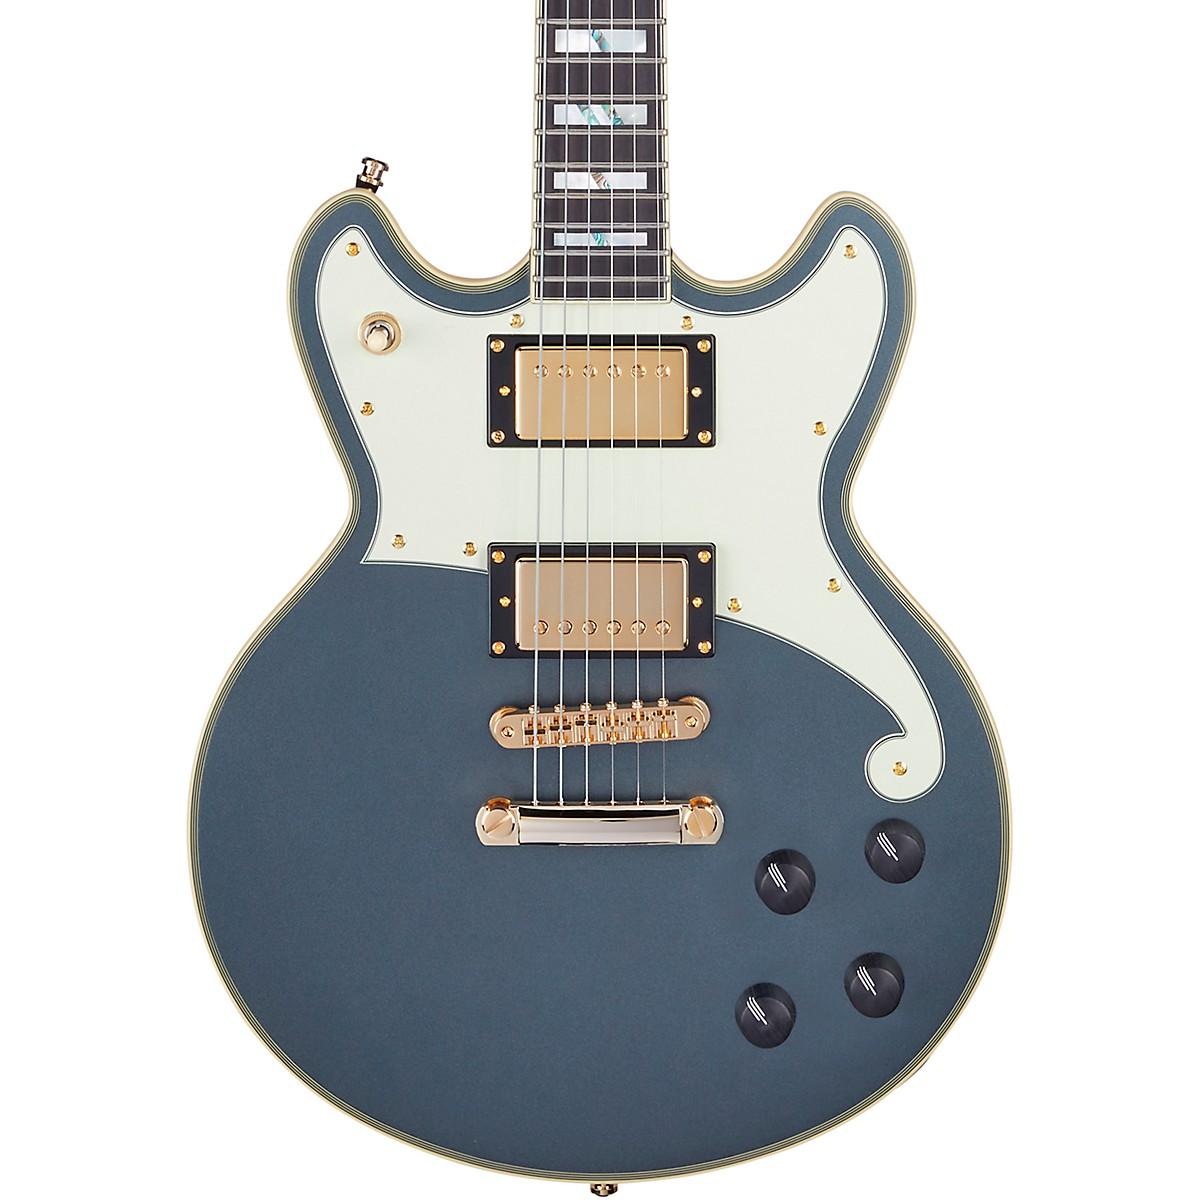 D'Angelico Deluxe Series Brighton Limited-Edition Solidbody Electric Guitar with USA Seymour Duncan Humbuckers and Stopbar Tailpiece